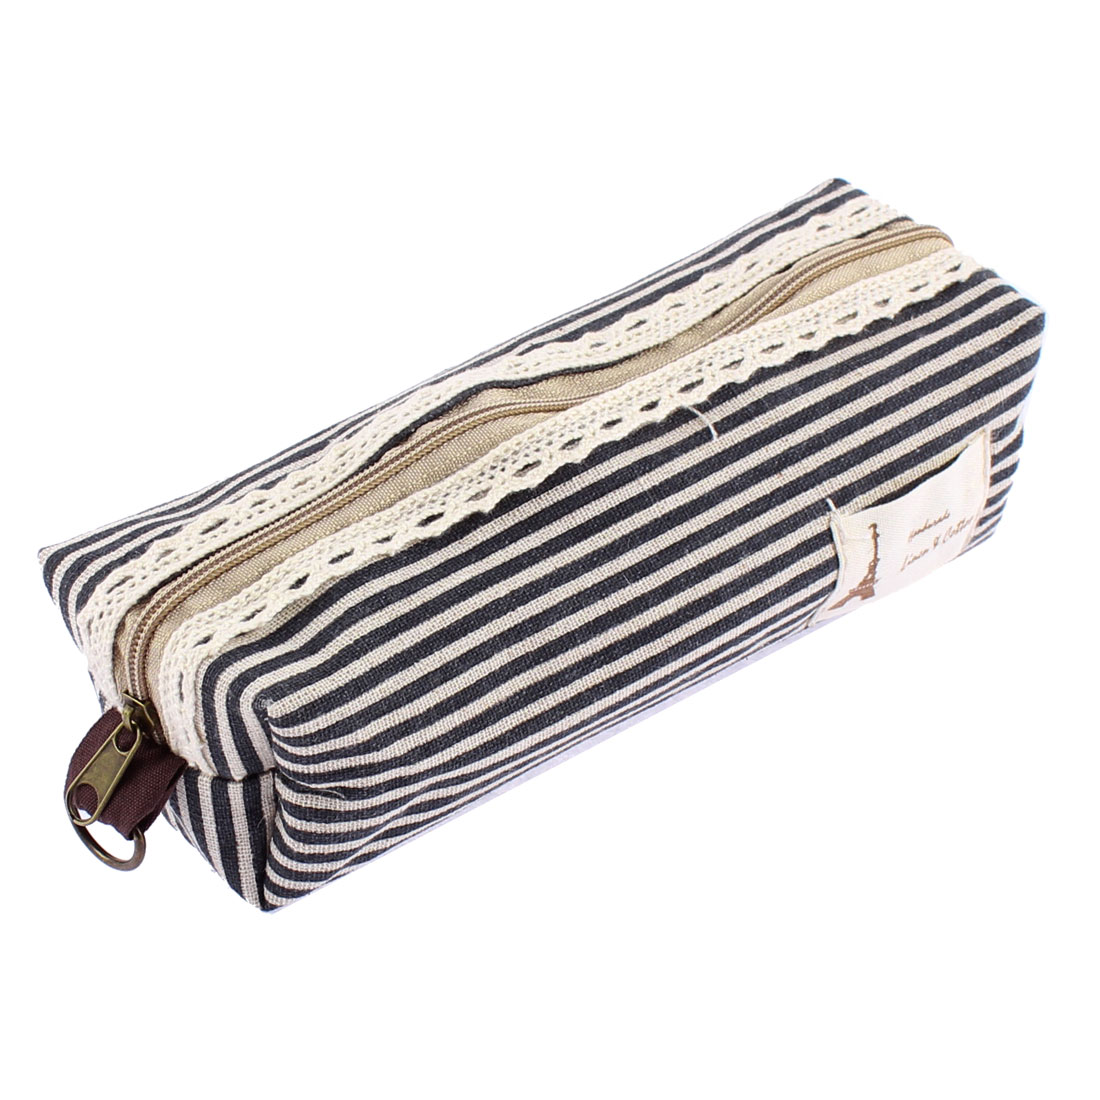 Students Canva Stripe Pattern Zippered Stationery Pen Pencil Bag Holder Black